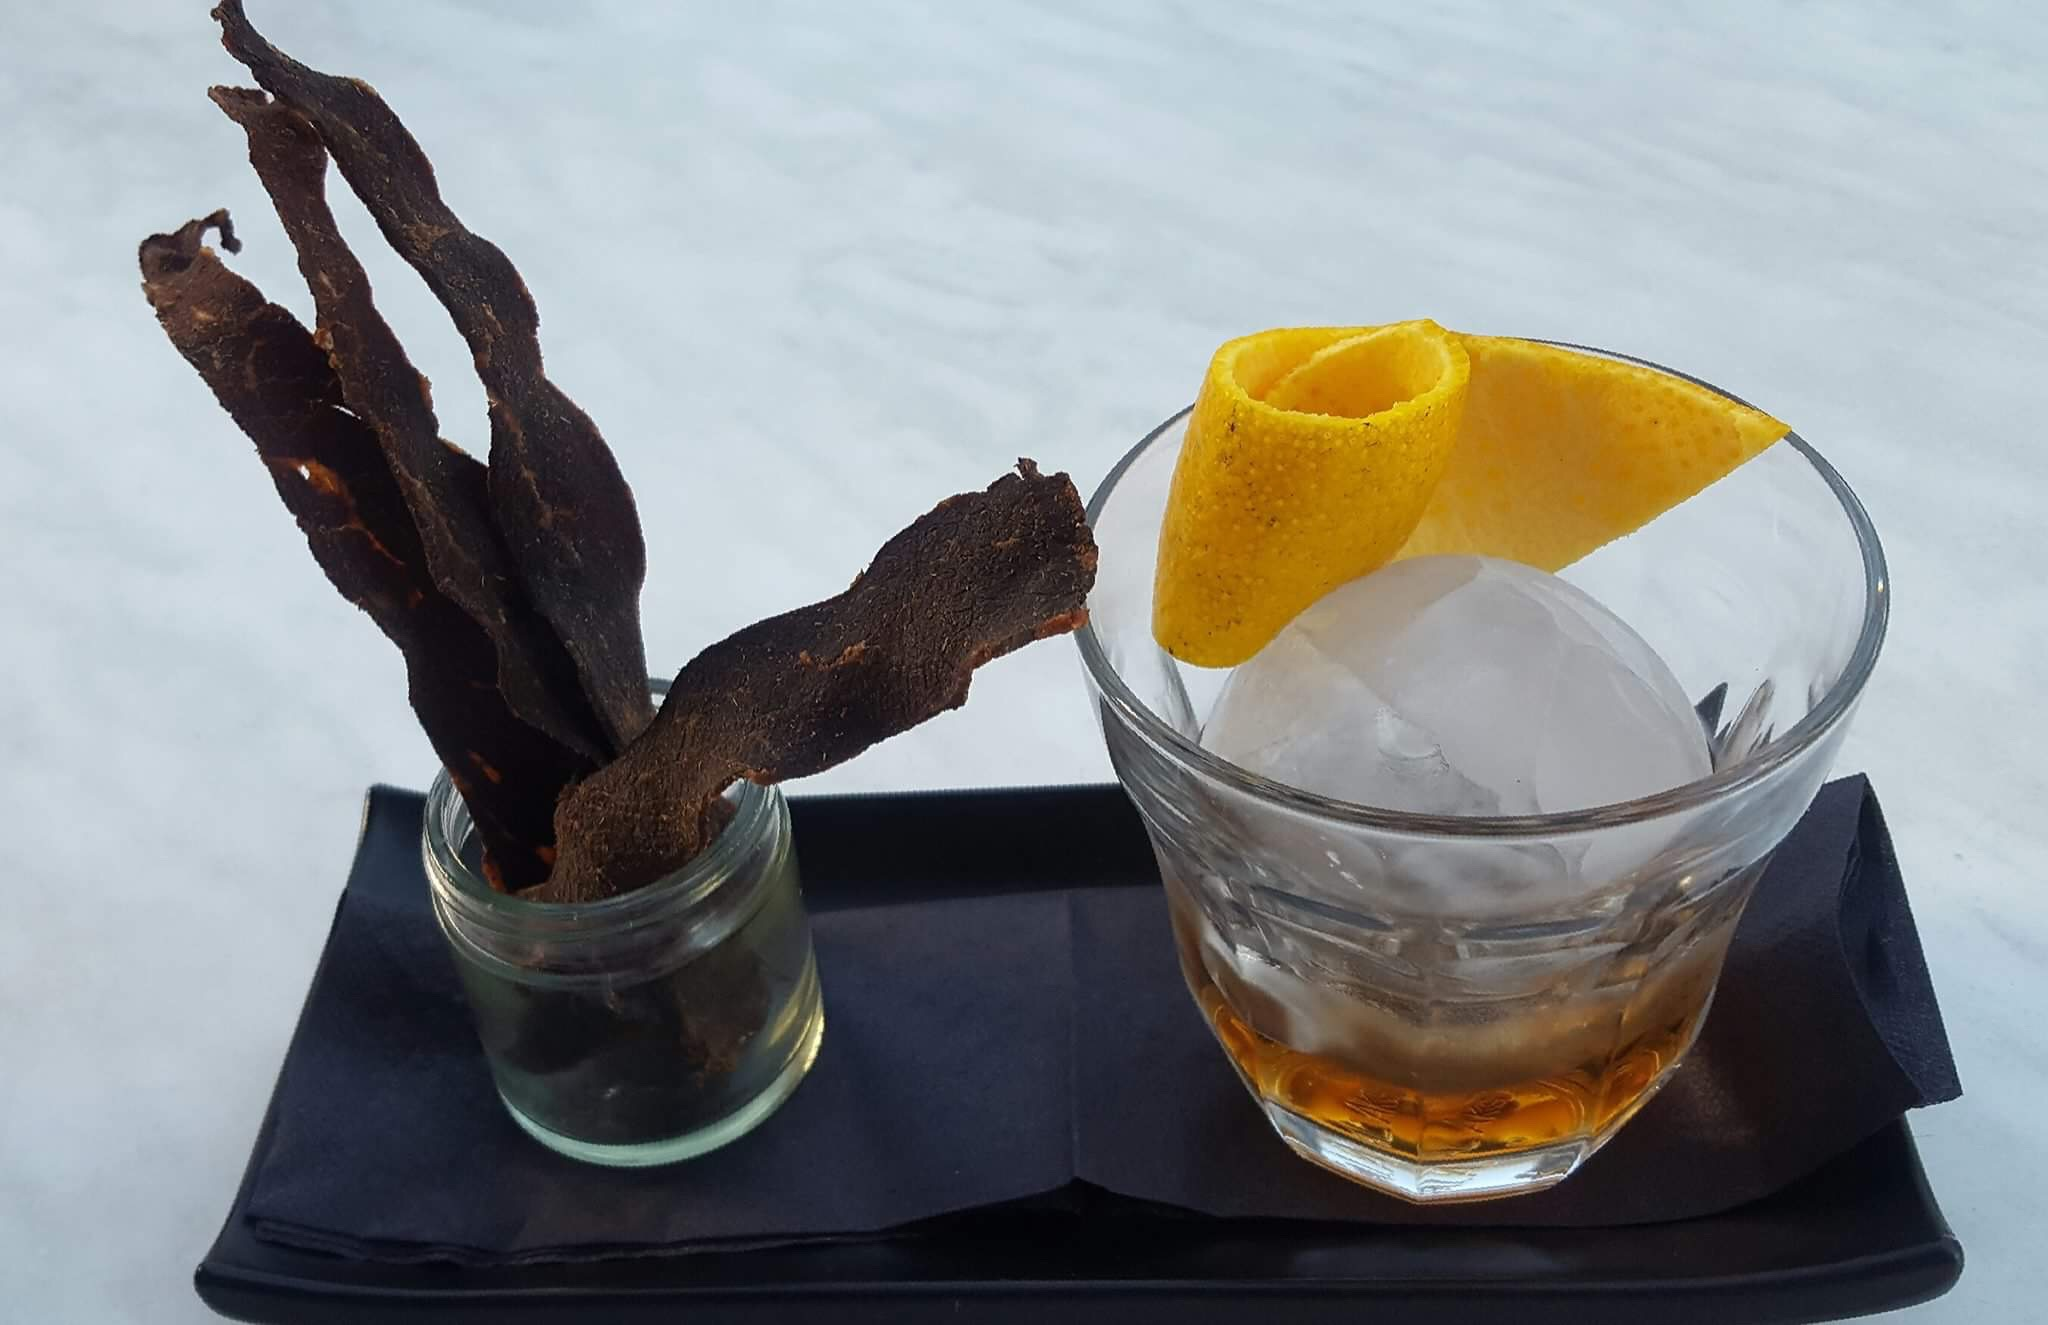 F.A.W.C! Buffalo jerky and bourbon make a quirky mix - Hawke's Bay Today